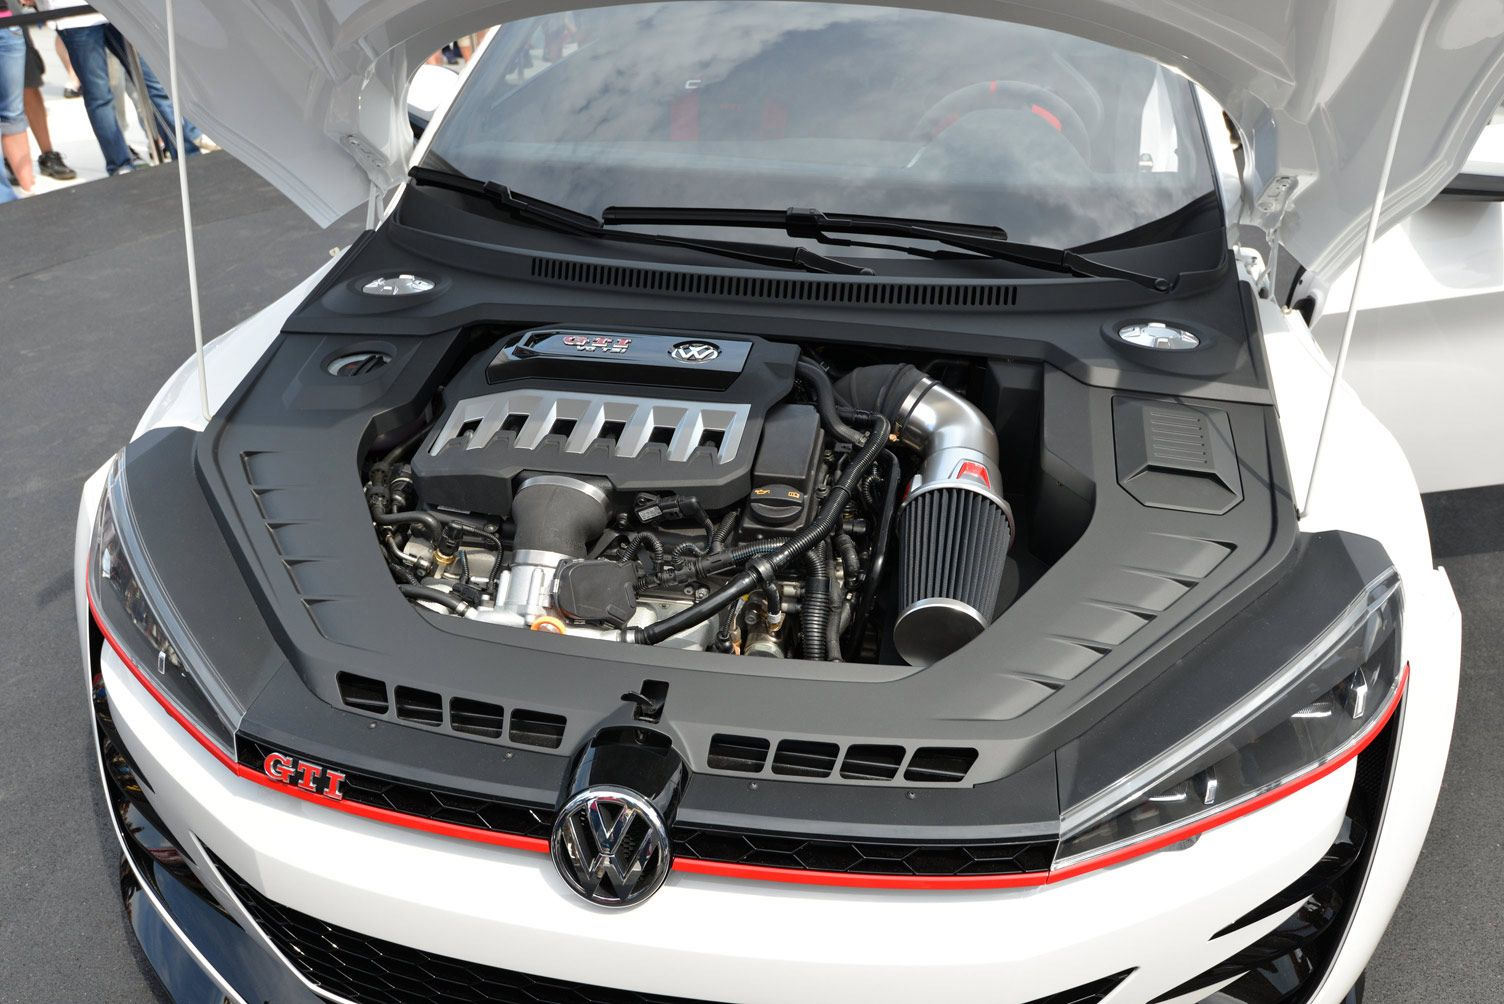 Gti Debut In Worthersee Volkswagen Showed Us A New Vr6 This 3 0l 24v Six Cylinder Could Possibly Replace The Current 3 6l Seen In Such Models Like The Passat